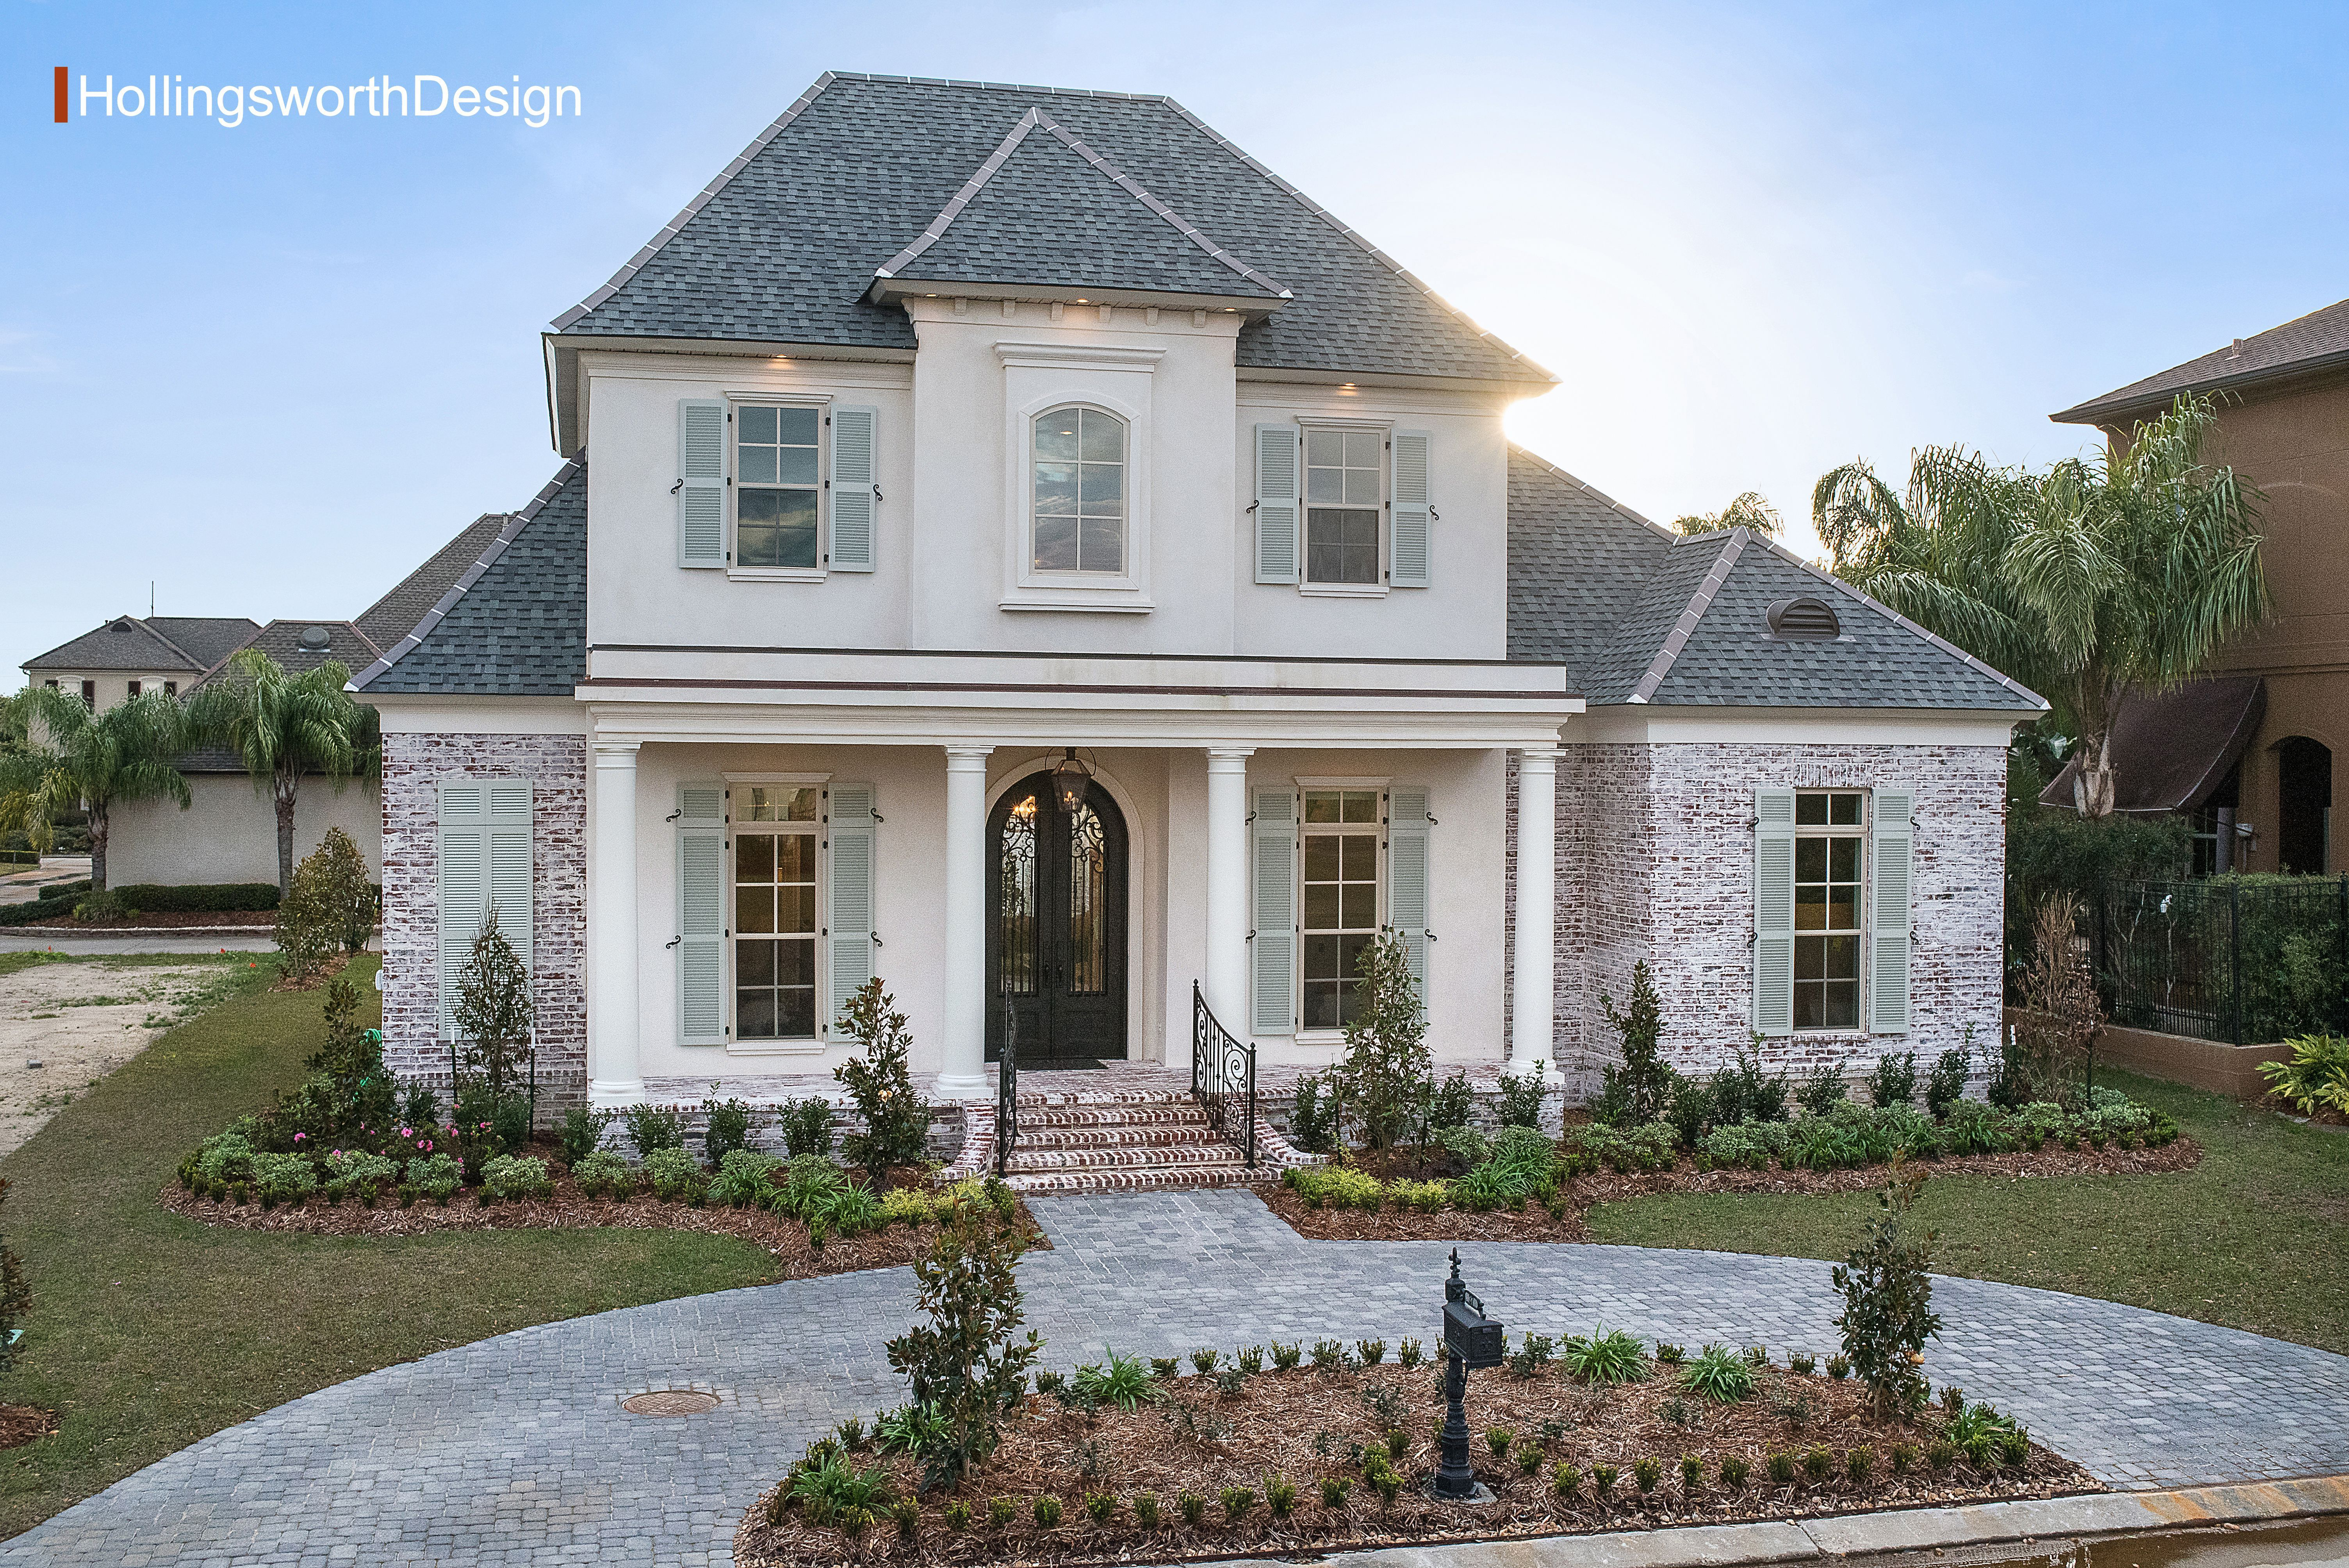 Palmetto 2 French House Plans French Country House Plans French Country House